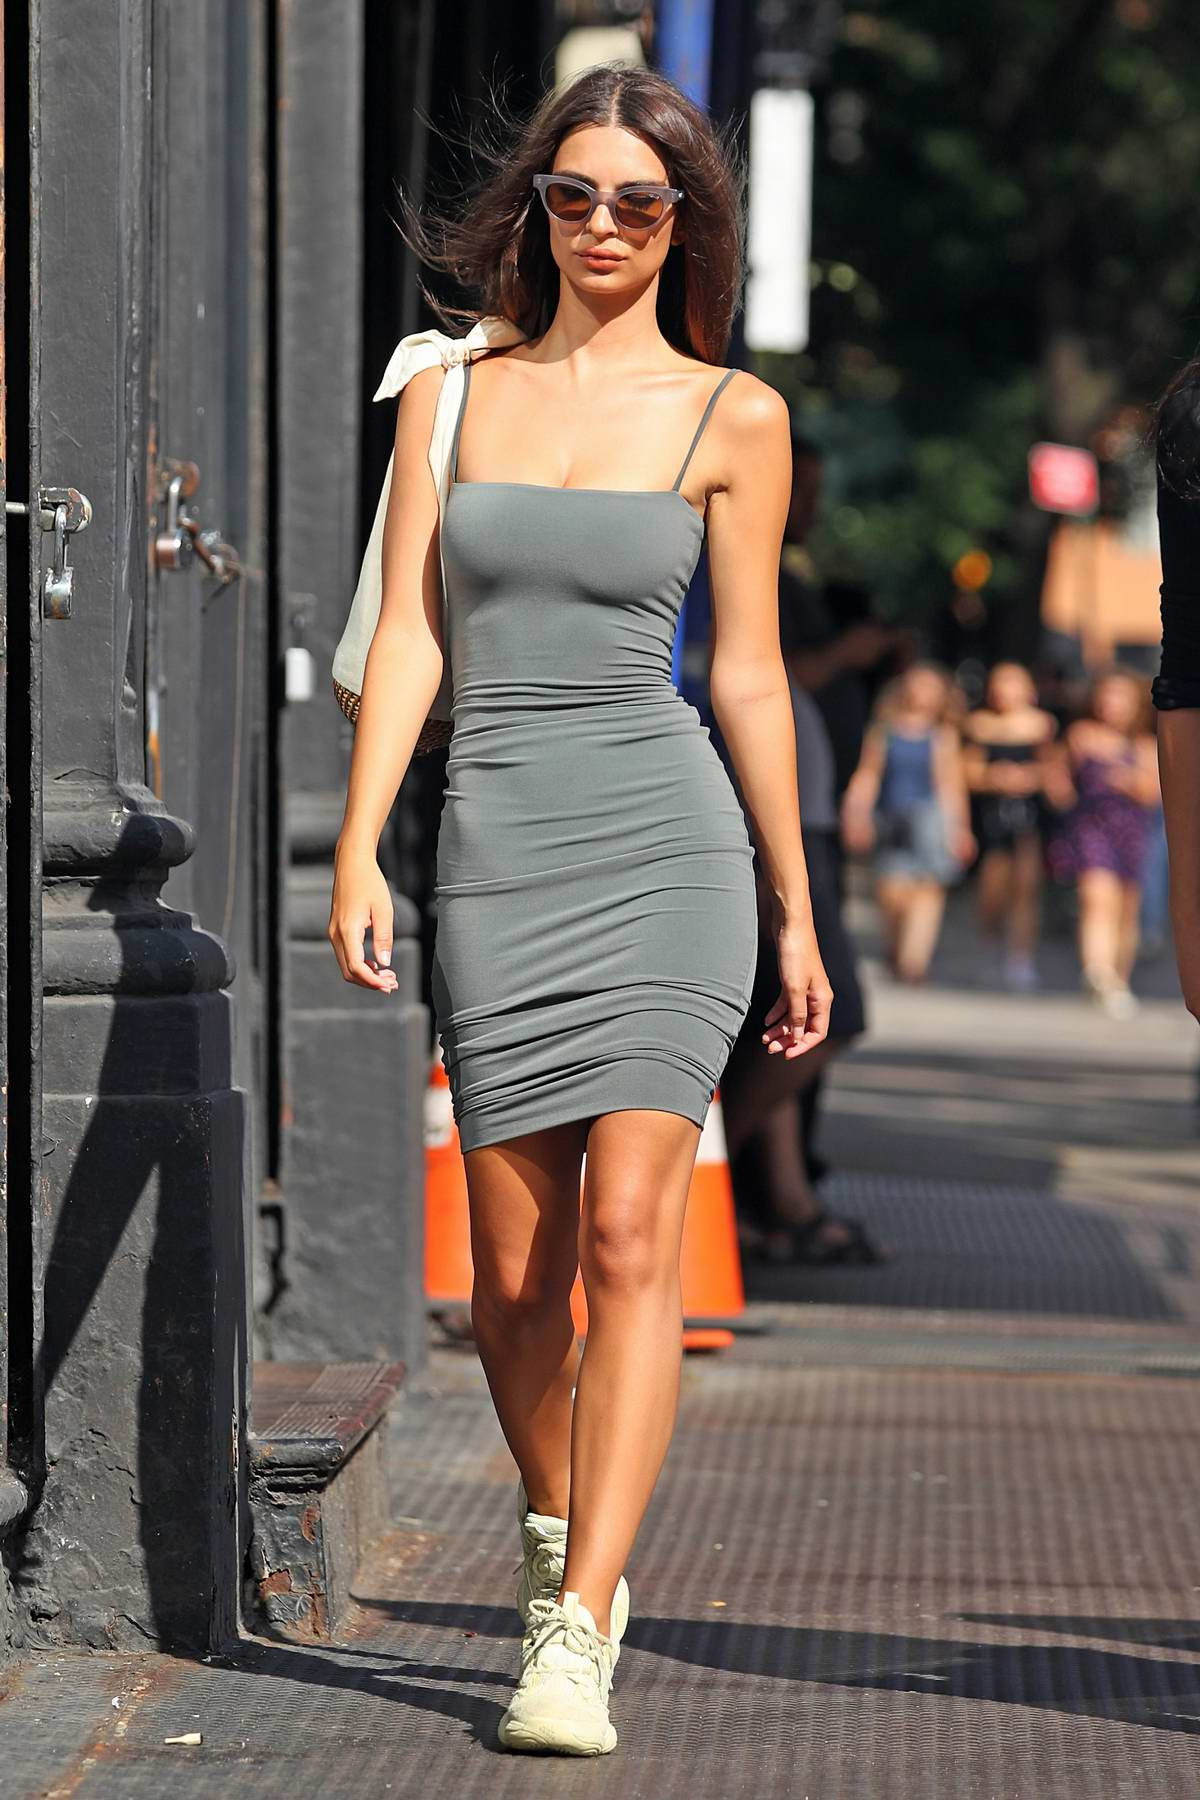 Emily Ratajkowski wears grey form-fitting dress with white sneakers while out in New York City